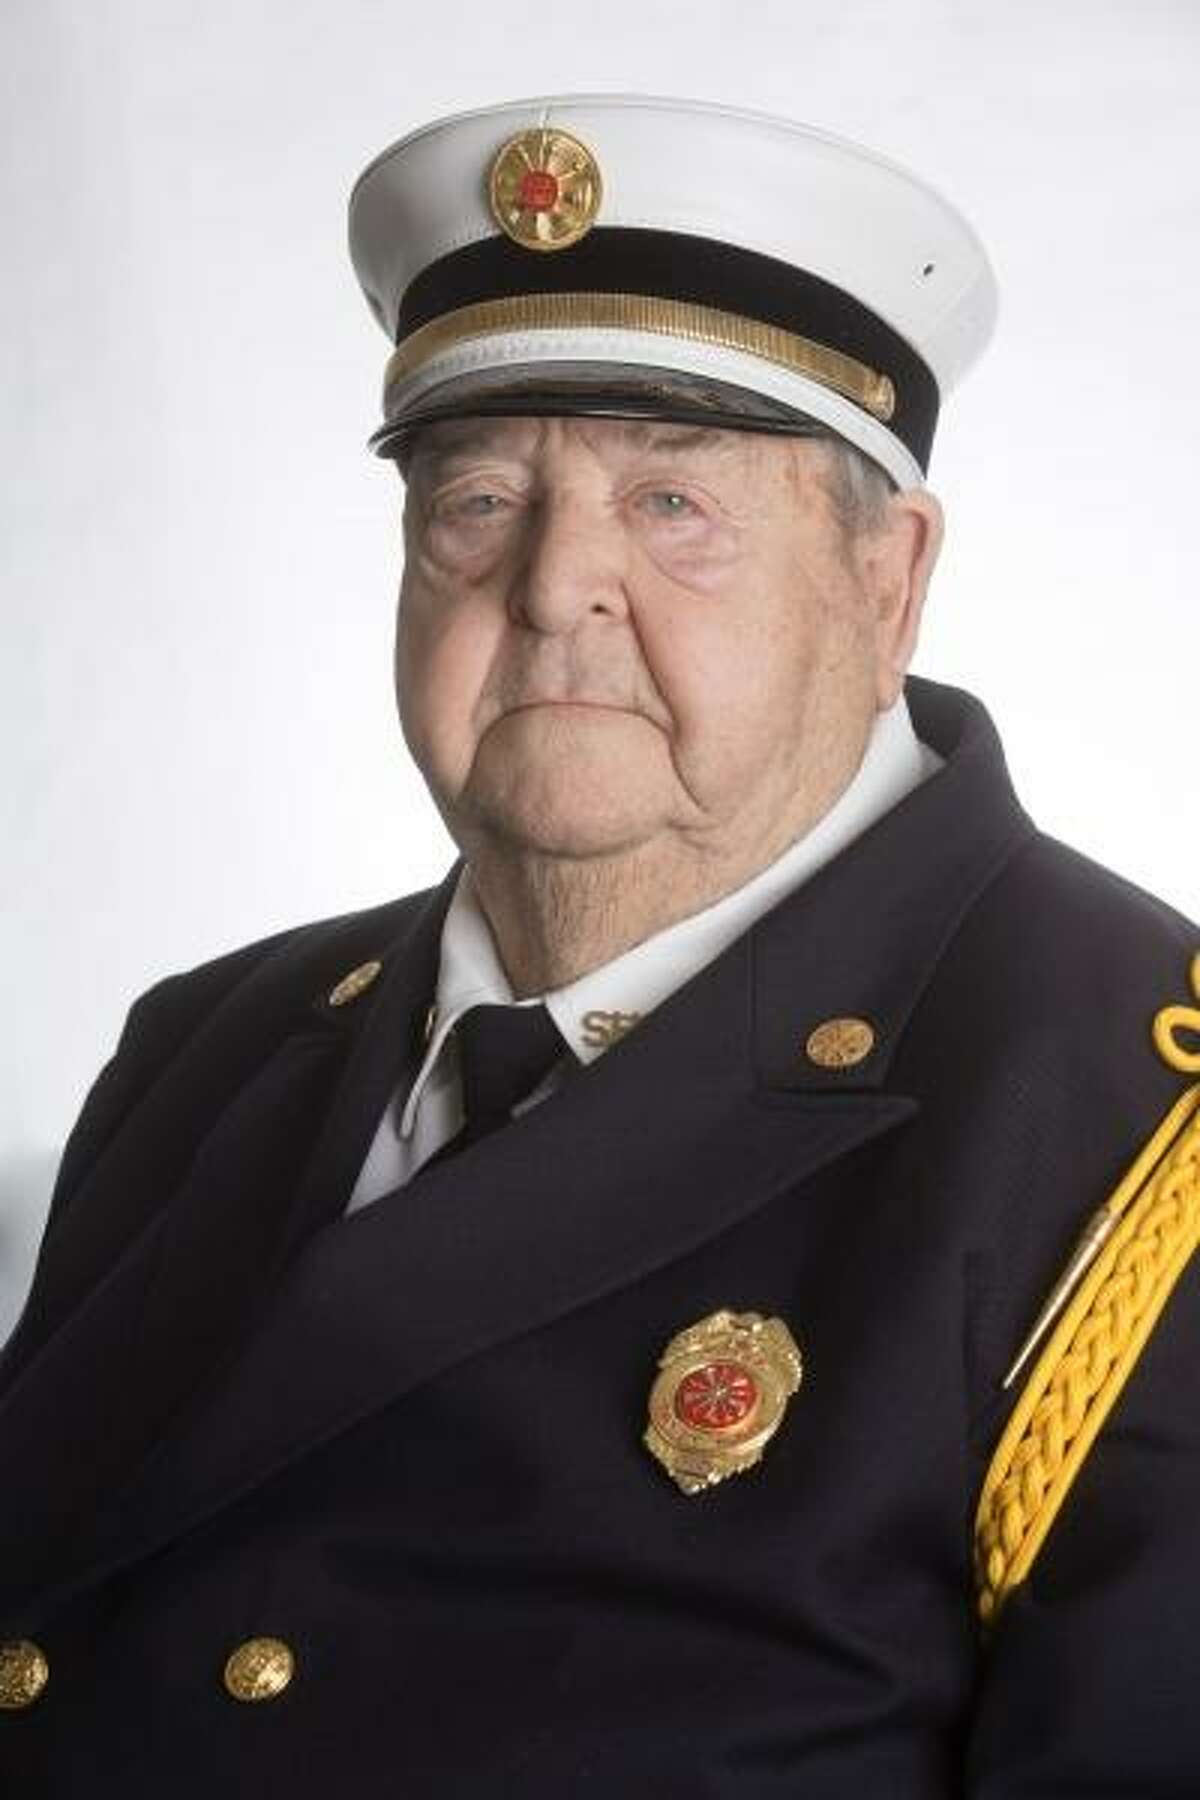 Former Fire Chief Michael Lucas, a member of Sandy Hook Volunteer Fire & Rescue Co. for more than 70 years, died Friday, Sept. 28, 2018. He was 92 years old.